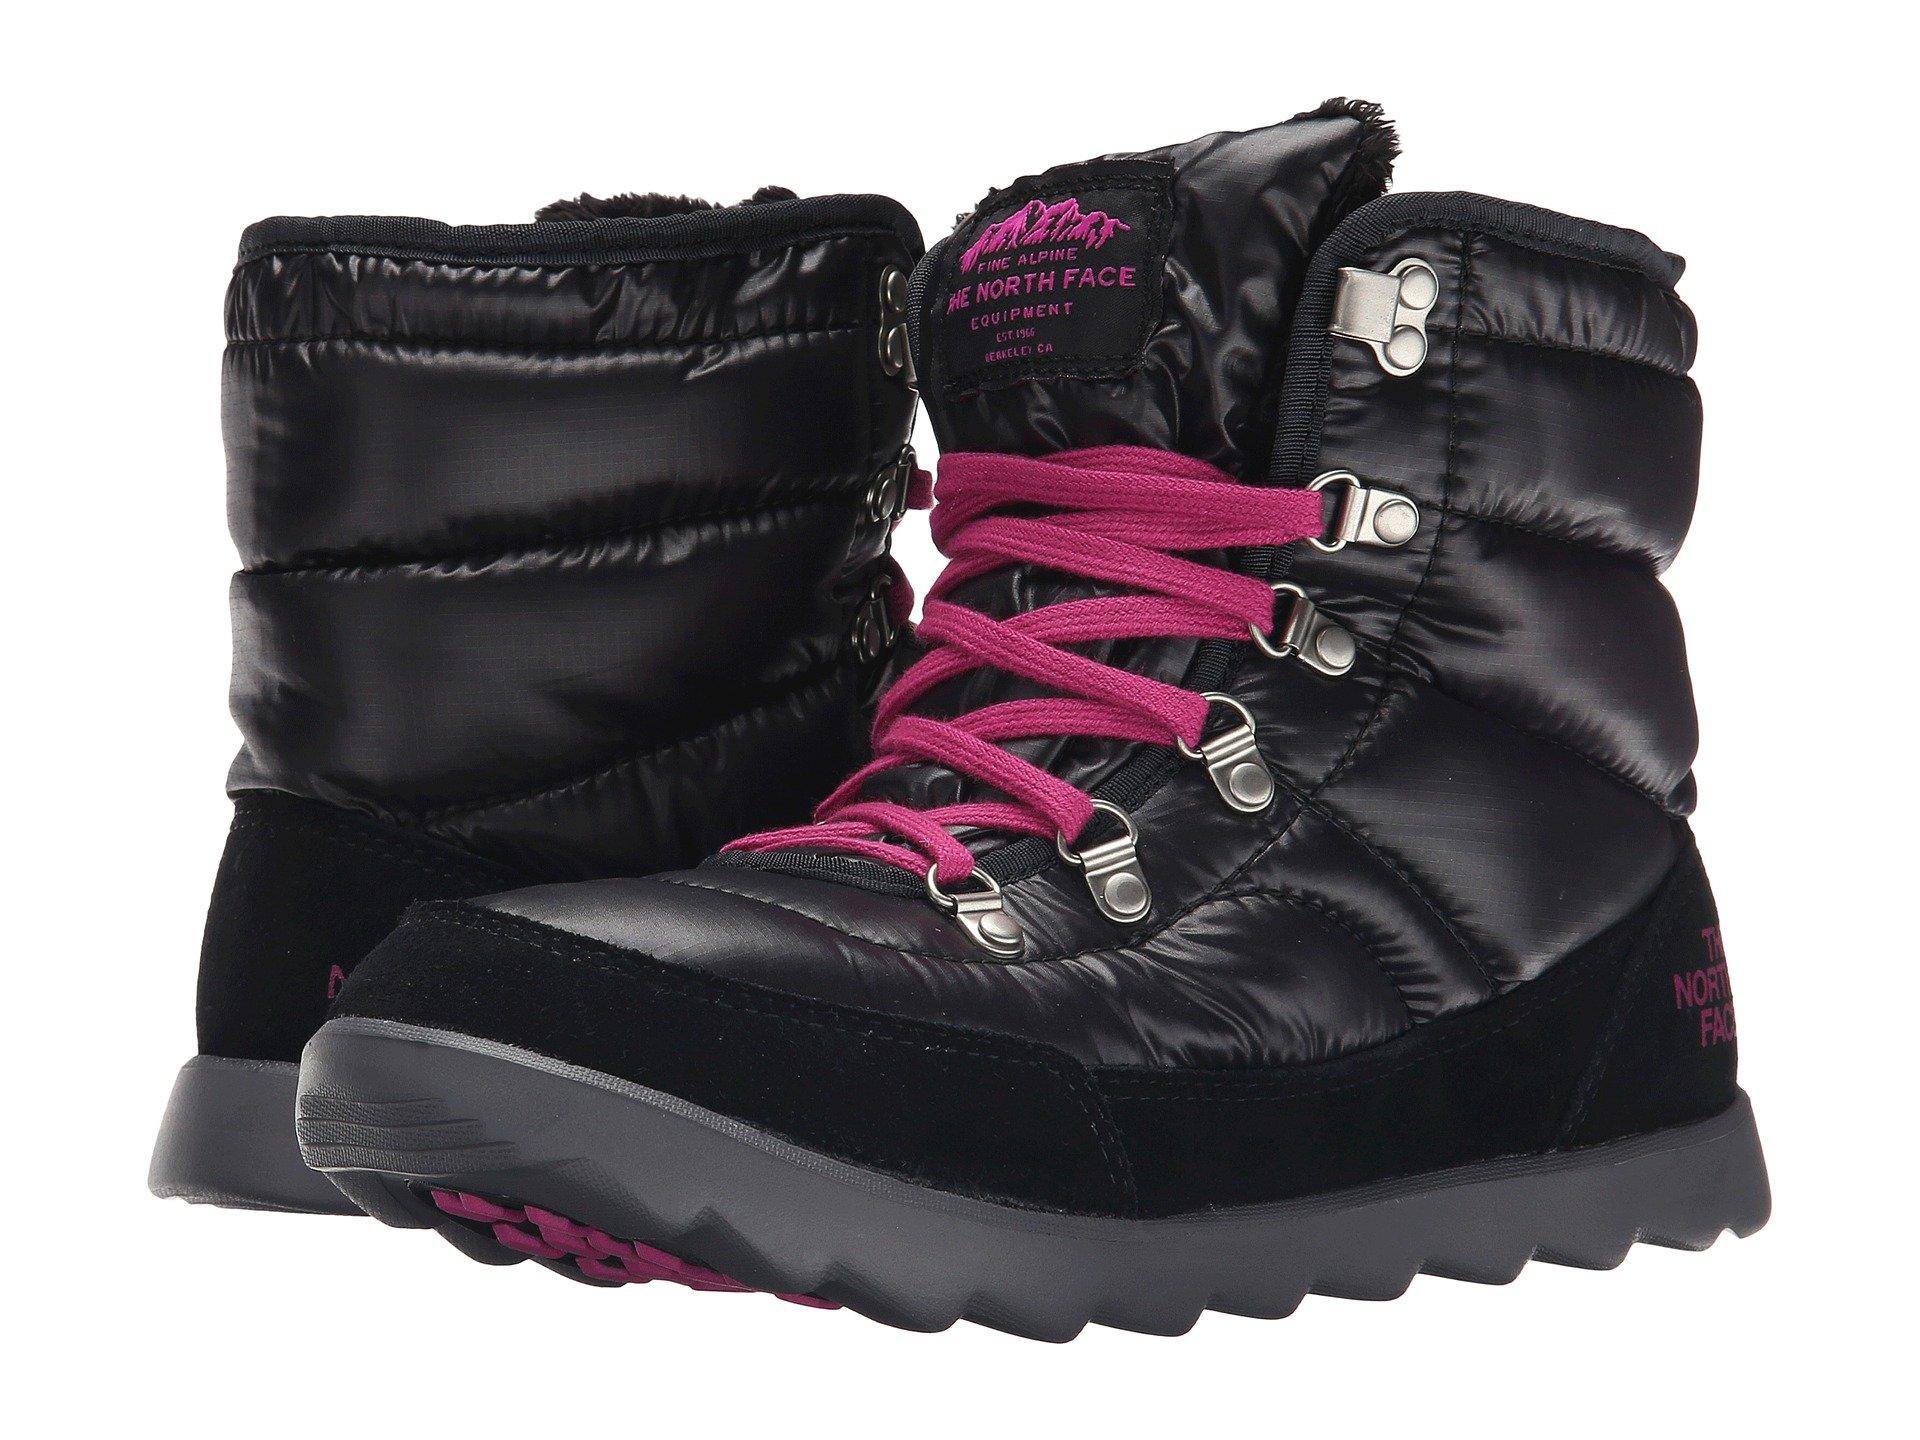 5234315bde4 The North Face Thermoball™ Lace In Shiny Tnf Black Luminous Pink (Prior  Season